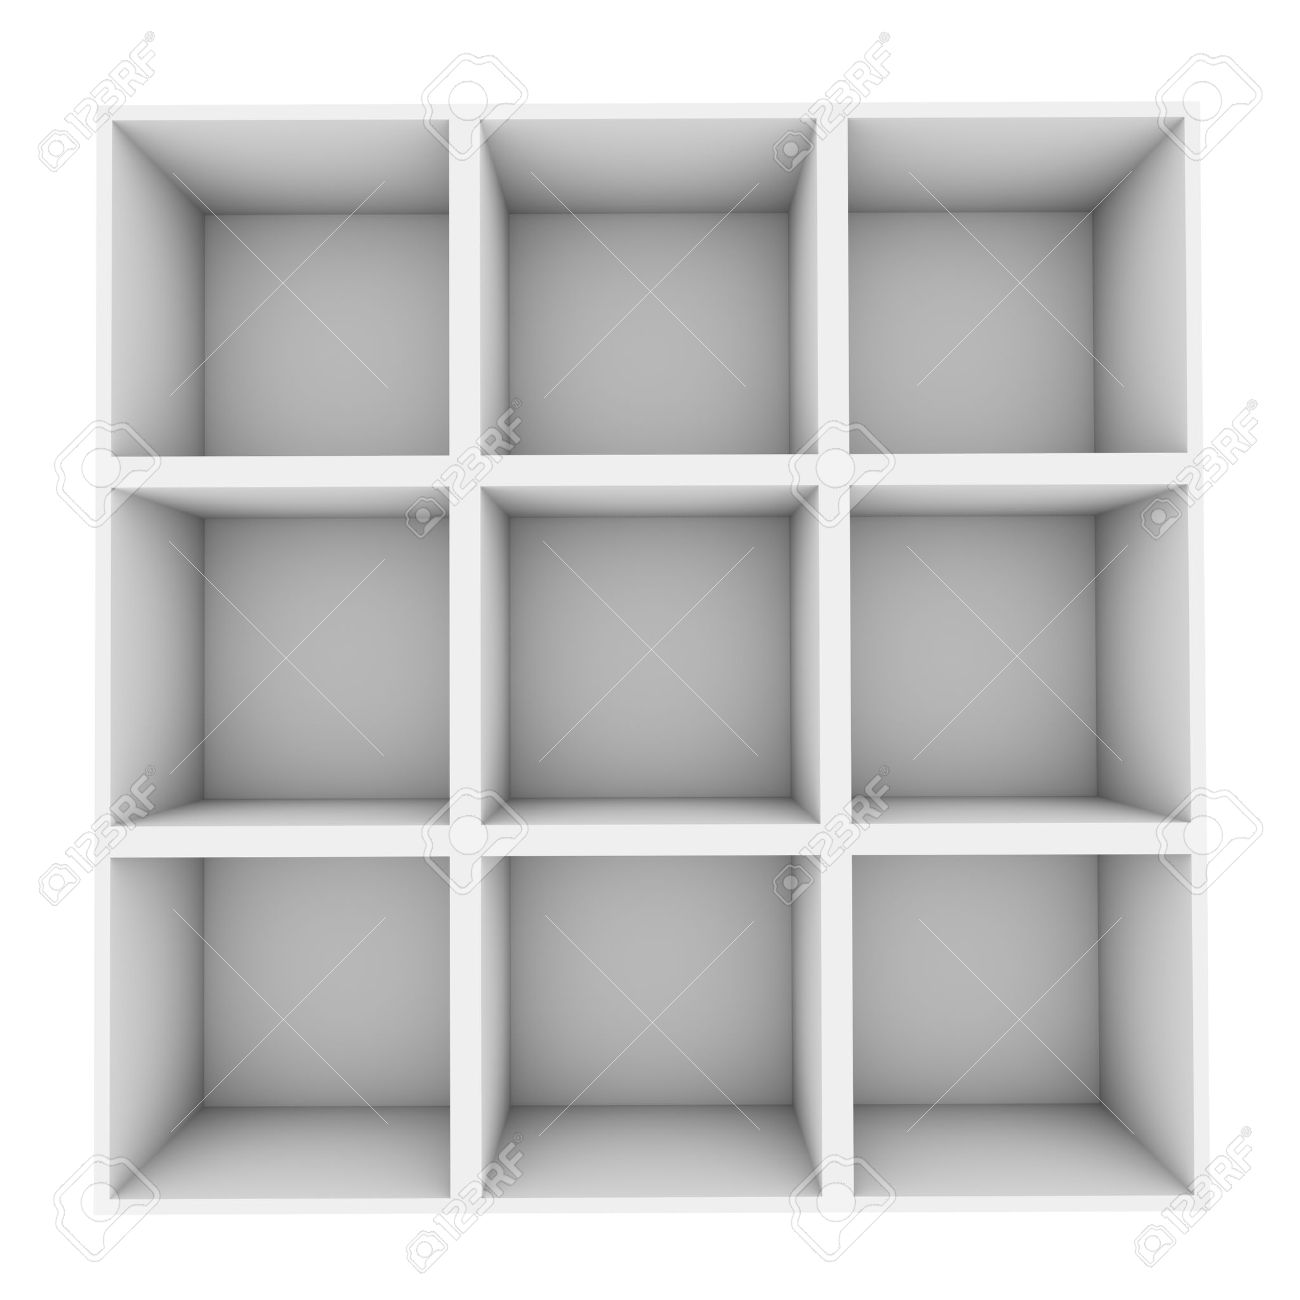 white square shelves isolated on white background stock photo  - stock photo  white square shelves isolated on white background